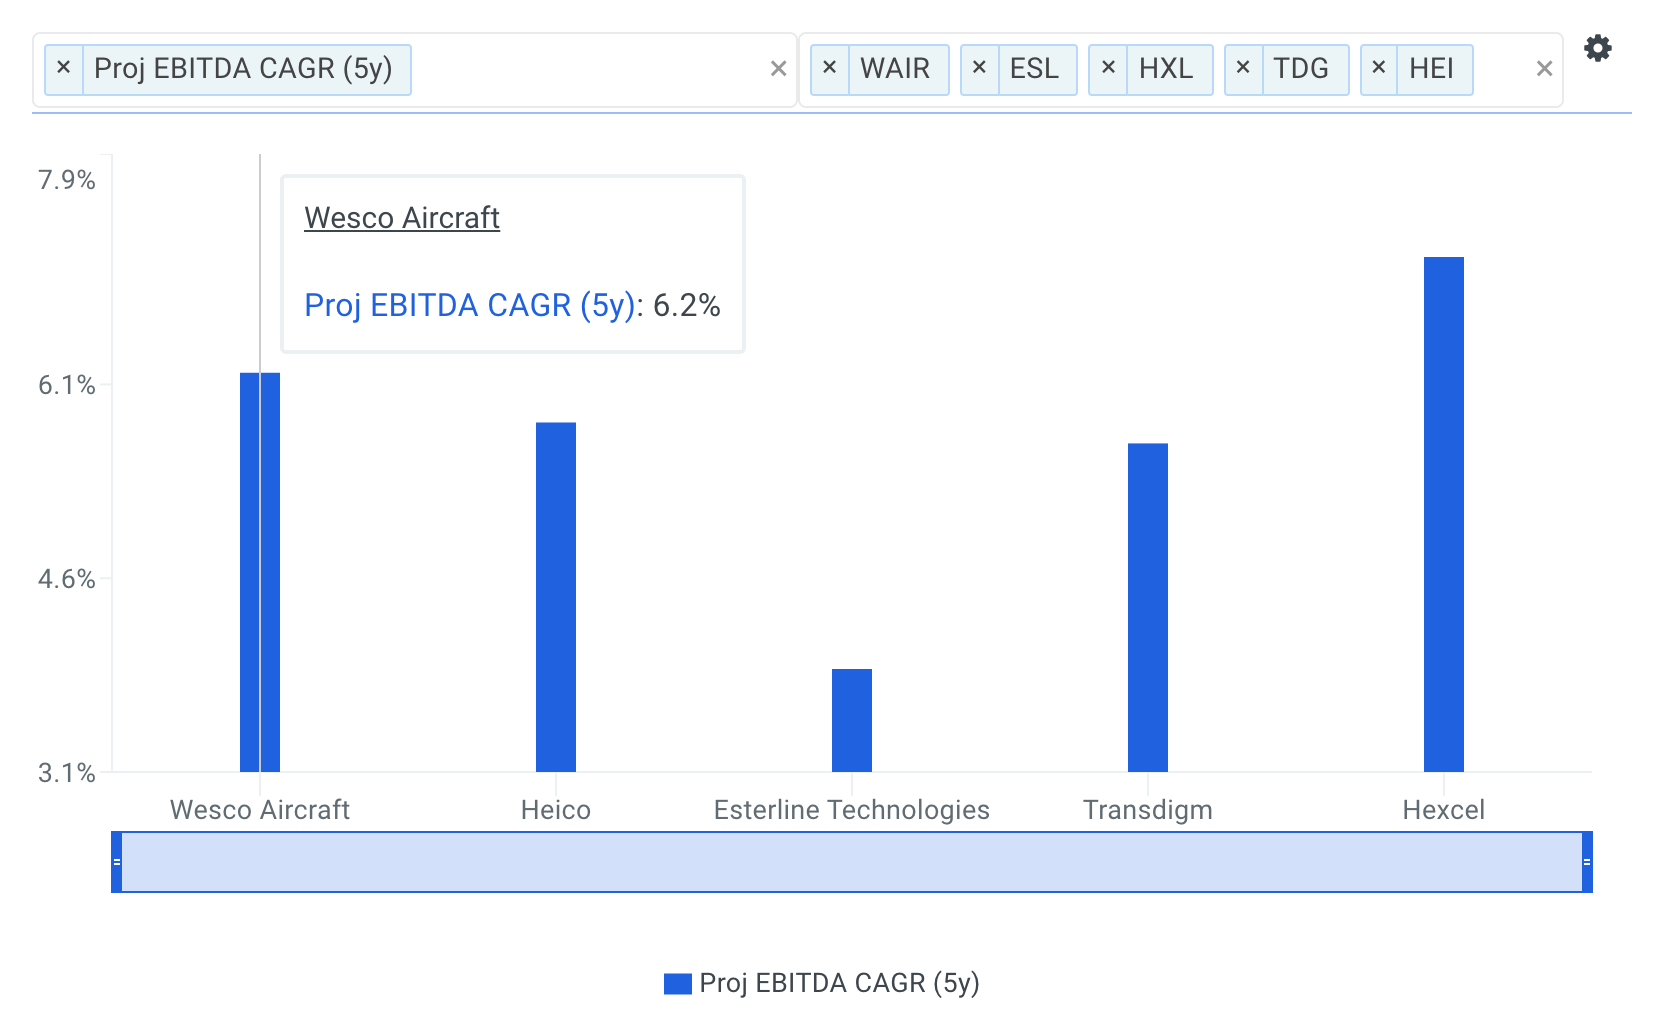 WAIR Project EBITDA Growth vs Peers Chart